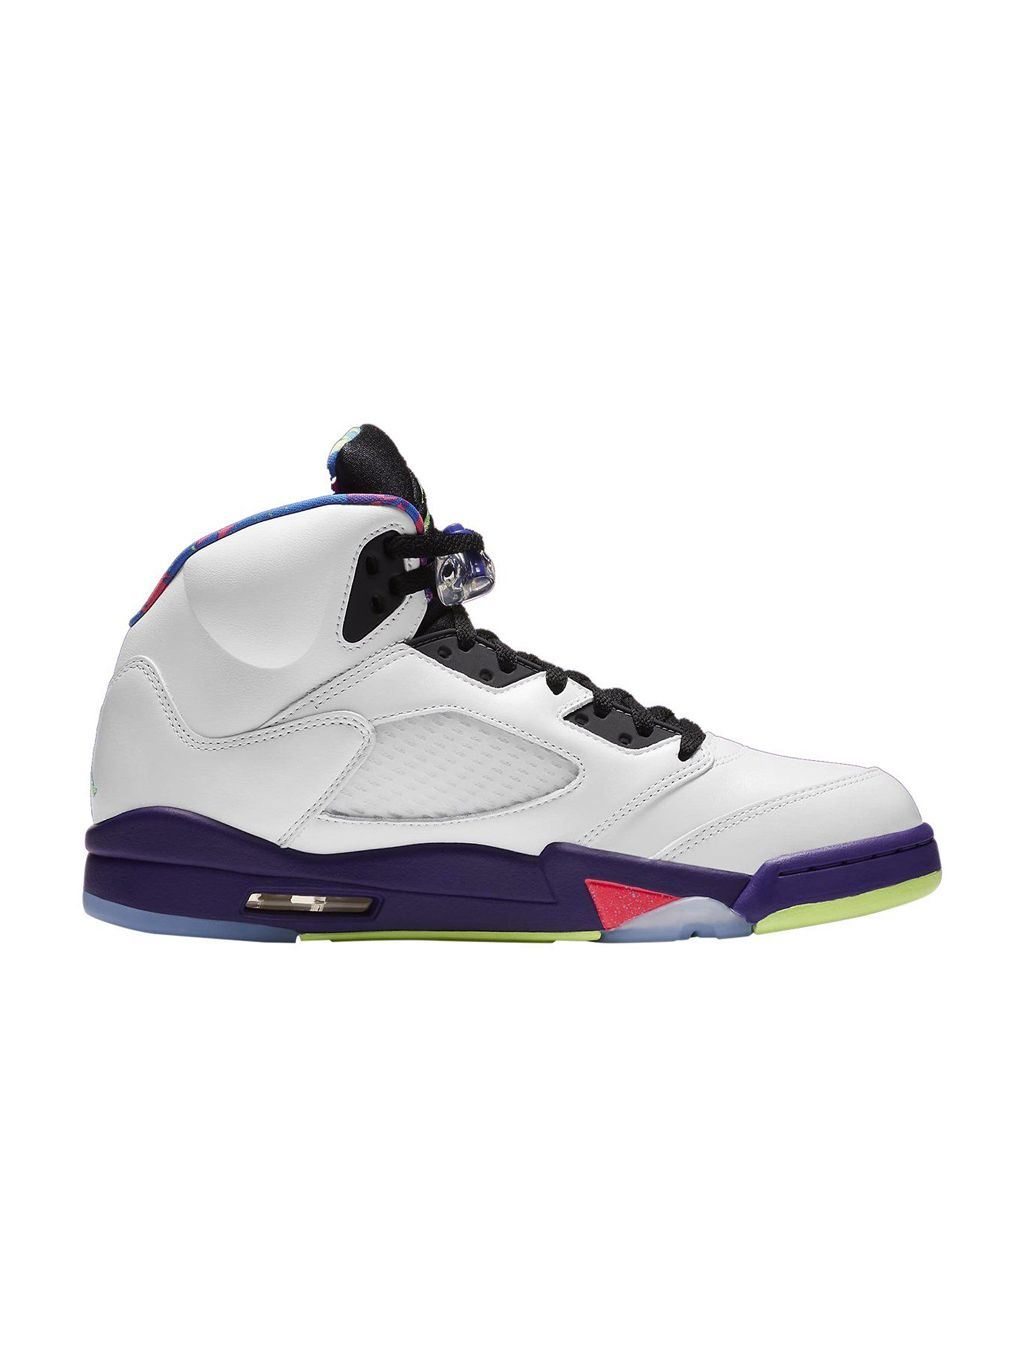 White Jordan 5 Retro Alternate Bel-air Shoes